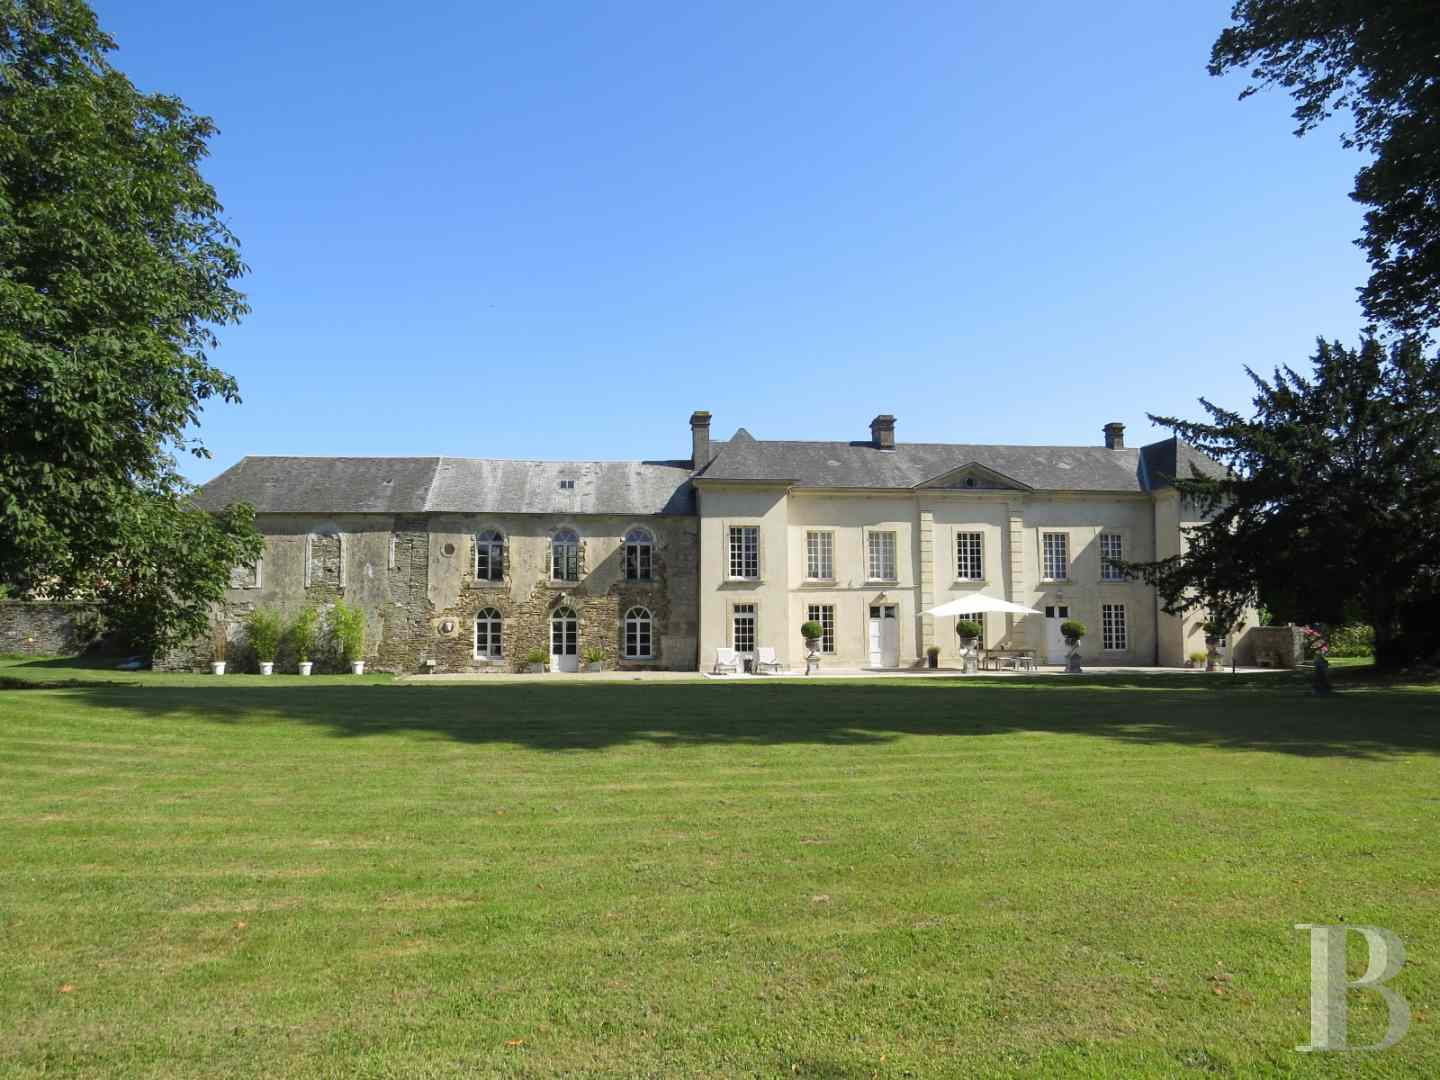 property for sale France lower normandy residences for - 1 zoom